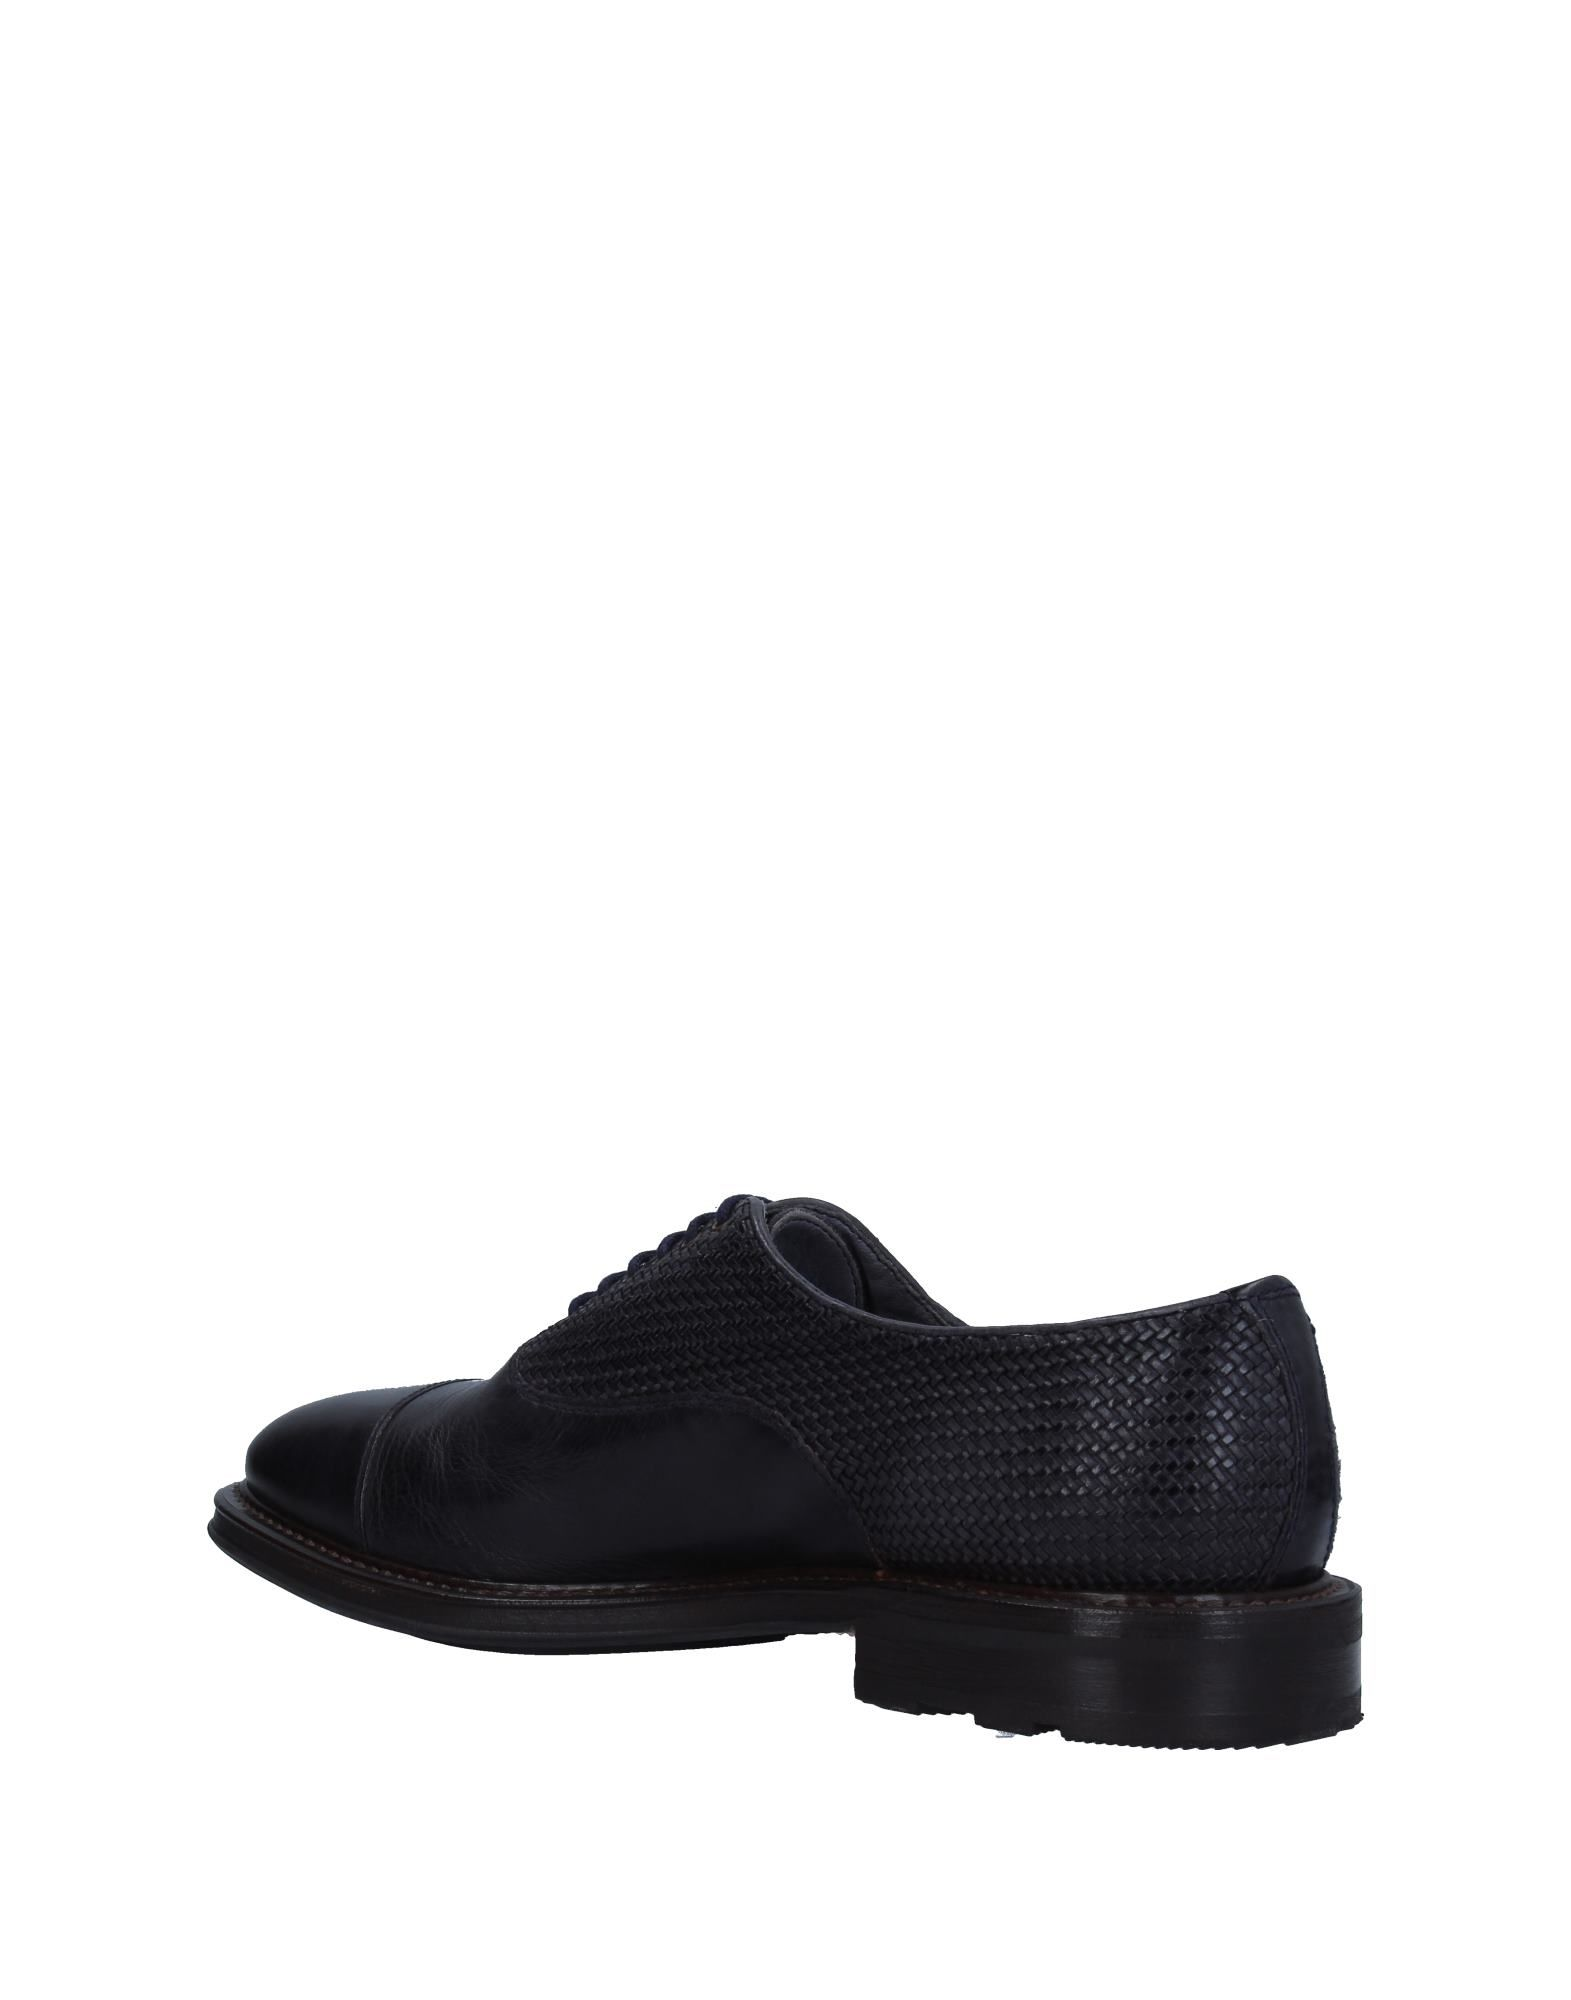 Chaussures À Lacets Fratelli Rossetti Homme - Chaussures À Lacets Fratelli Rossetti sur